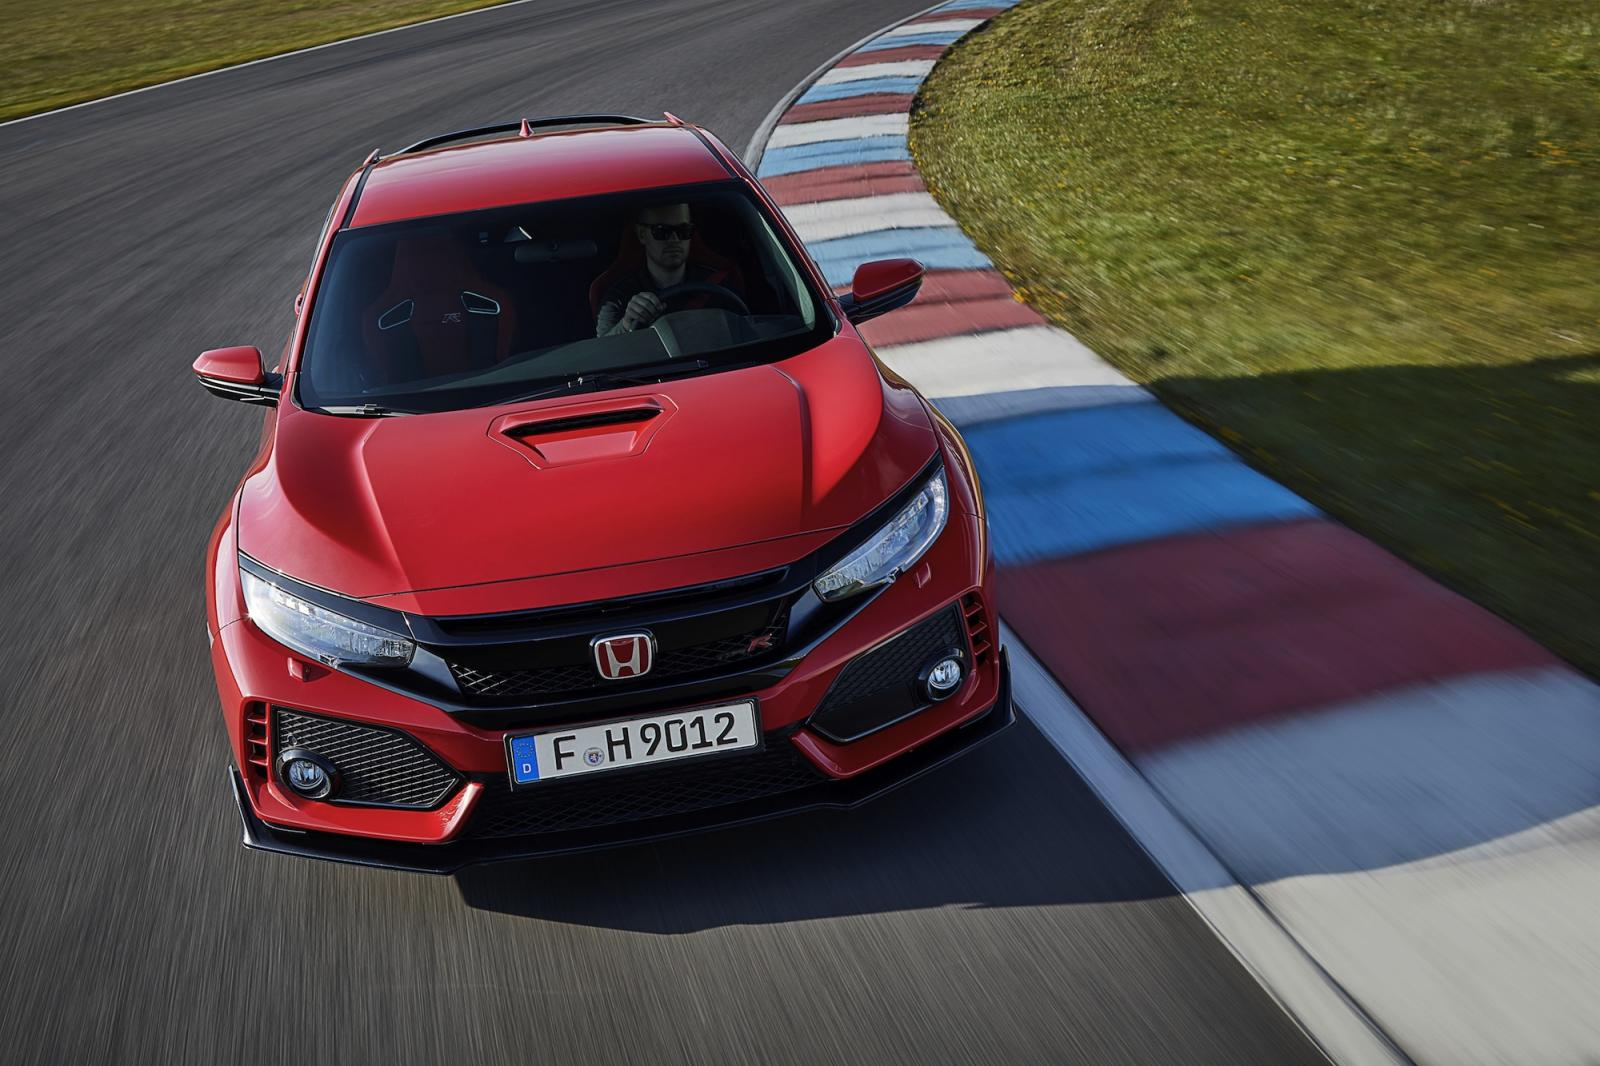 nouvelle honda civic type r 2017 -